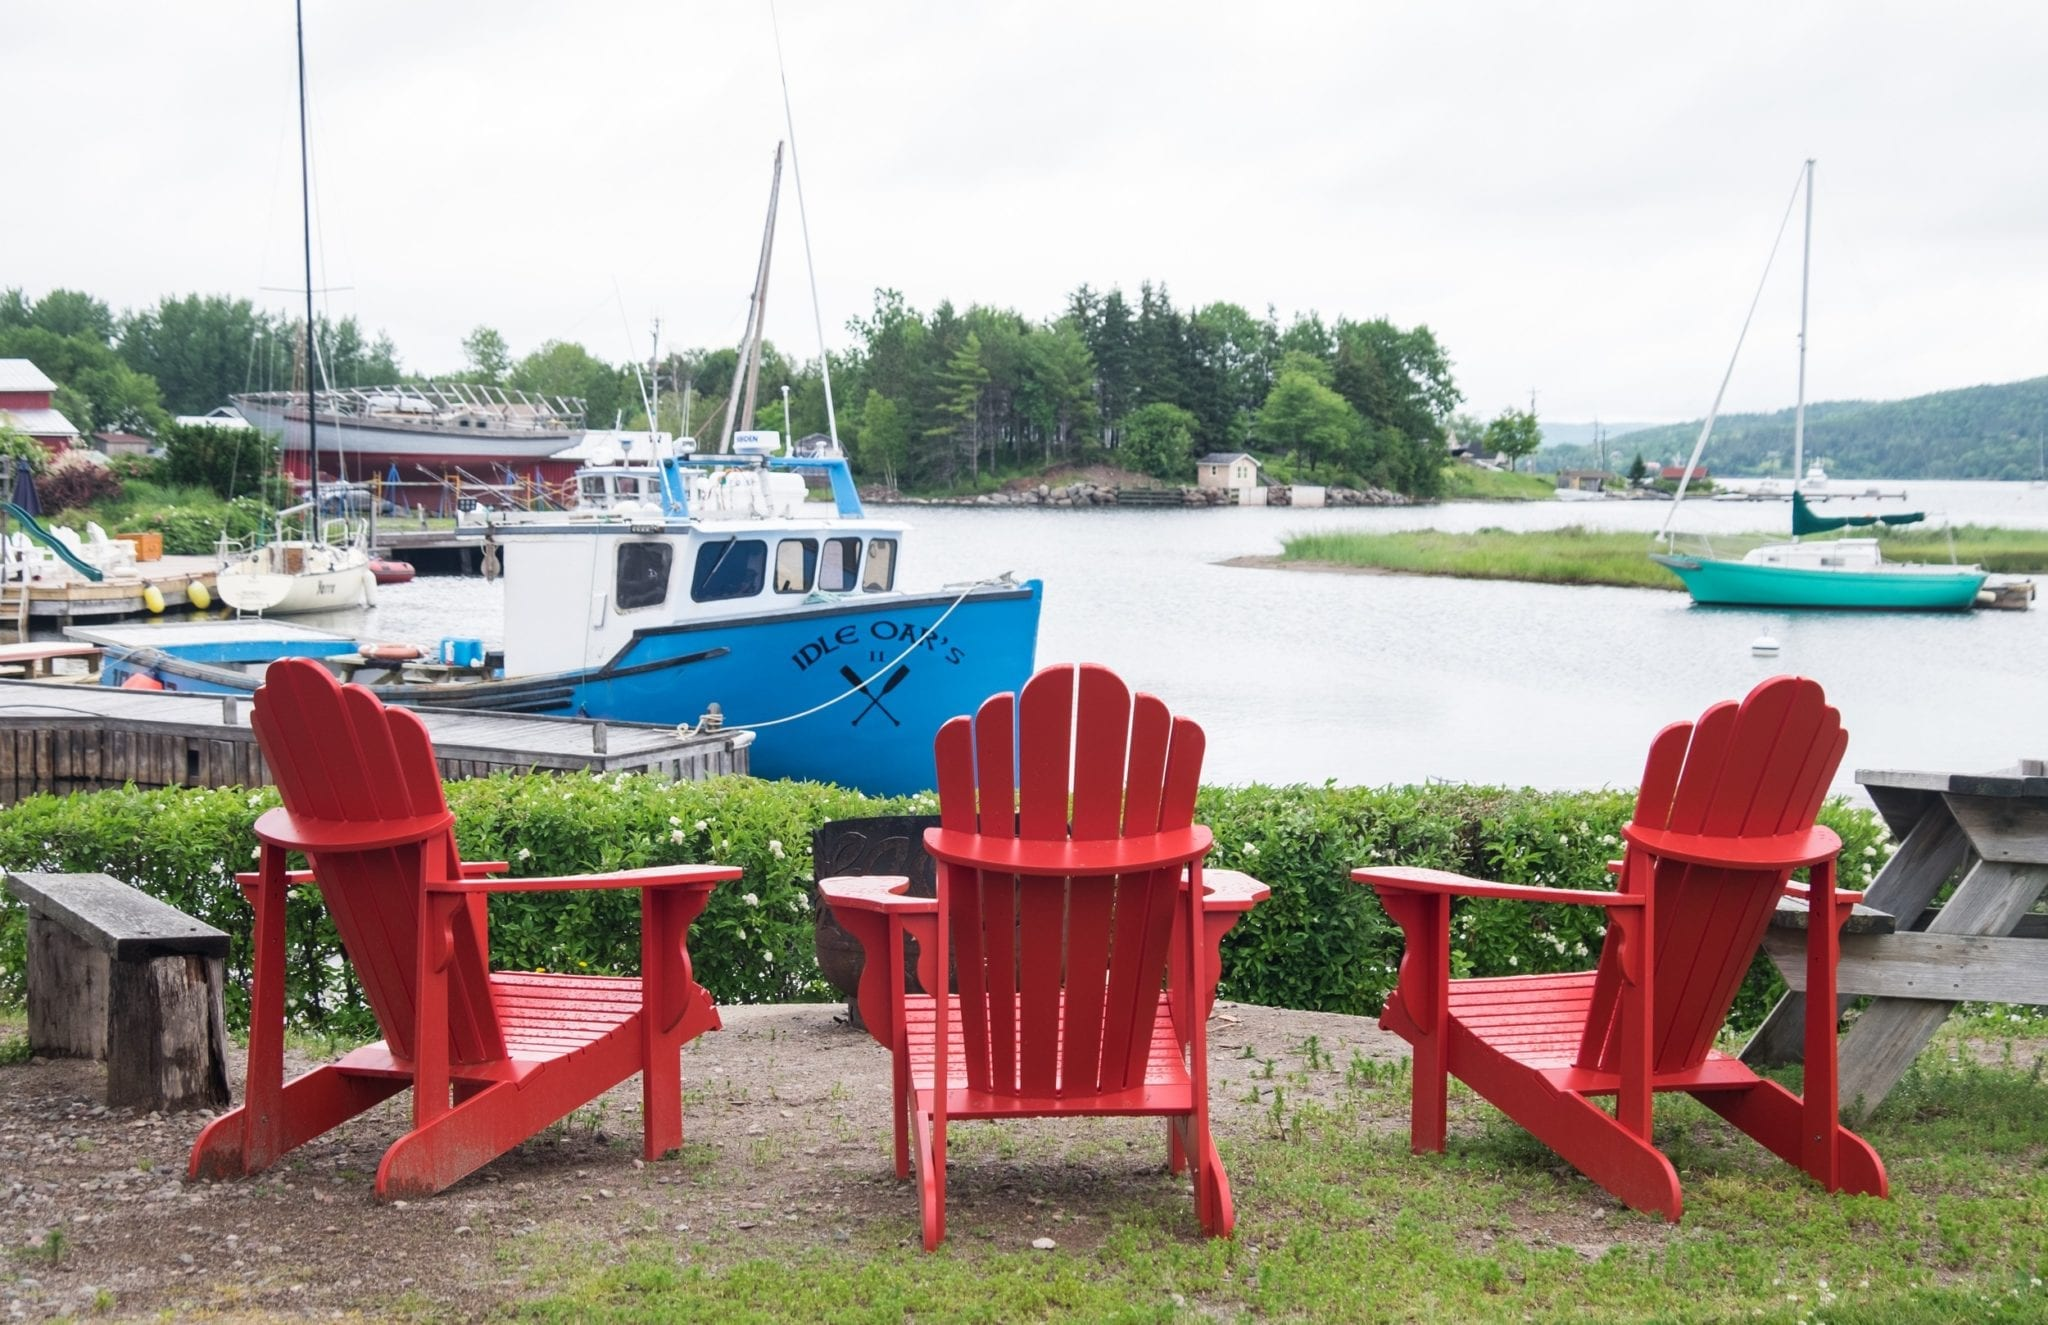 Three red chairs sitting in front of a blue boat a lake on an overcast day in Nova Scotia.